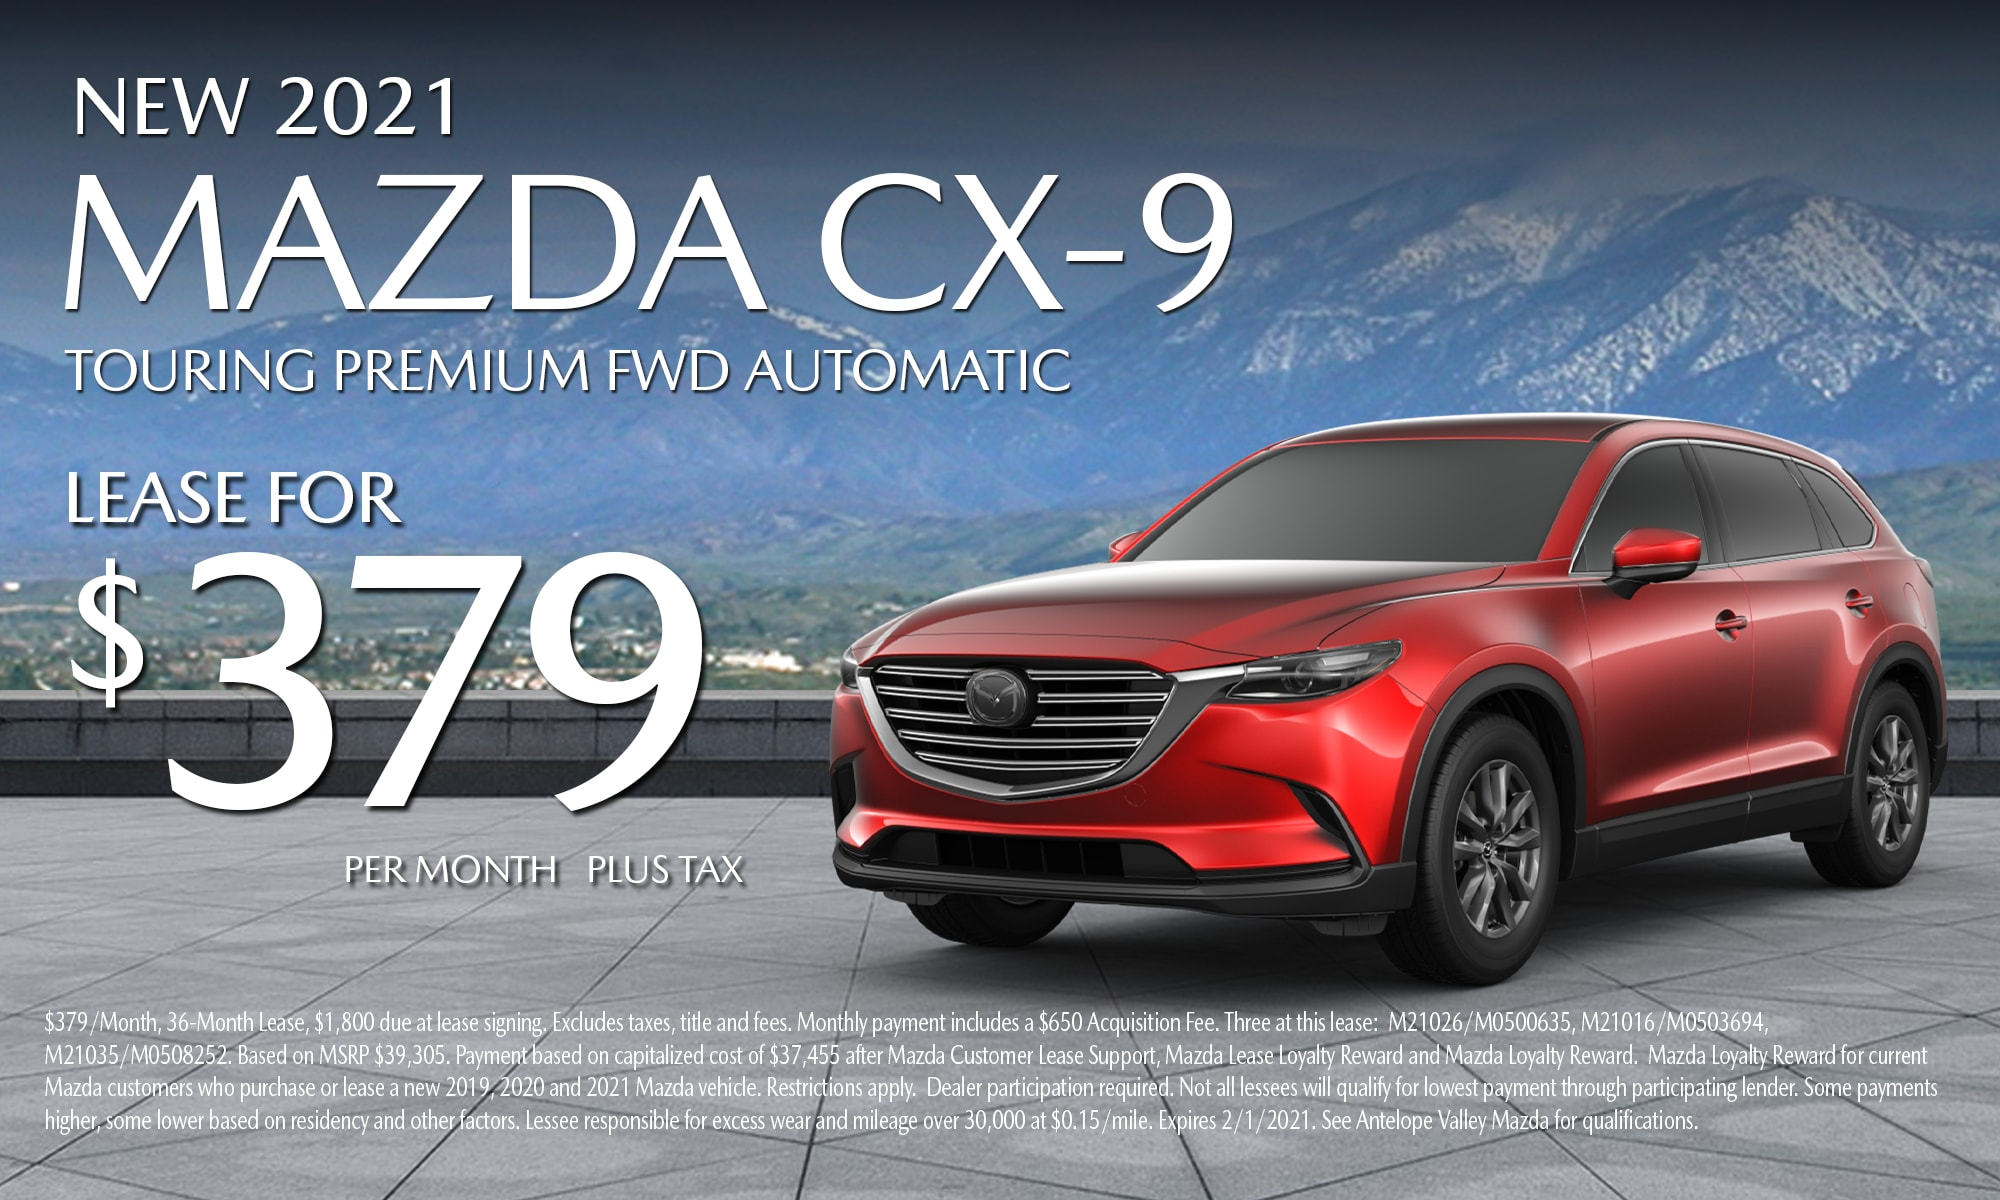 Antelope Valley Mazda Special lease offer on 2021 Mazda CX-9 Touring